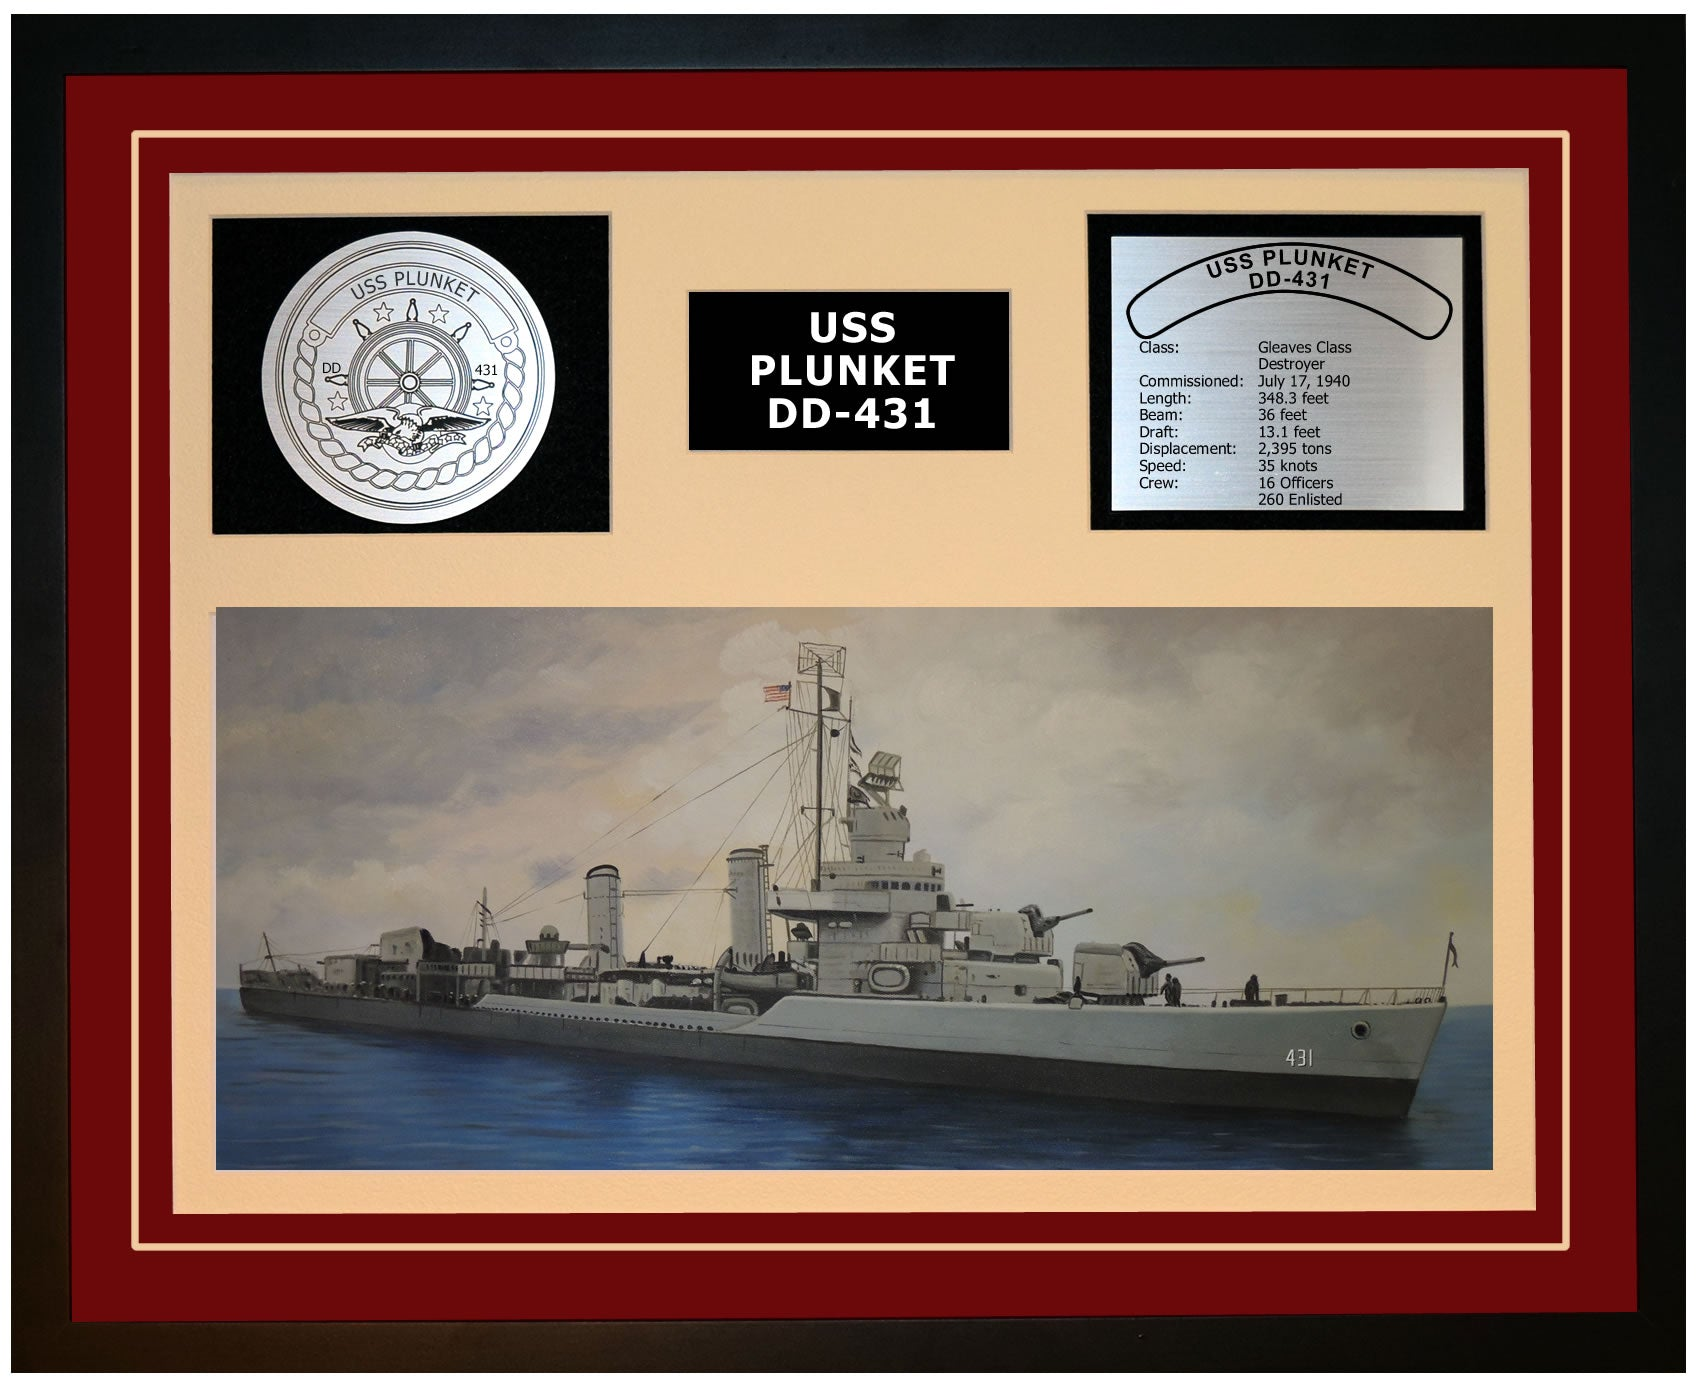 USS PLUNKET DD-431 Framed Navy Ship Display Burgundy